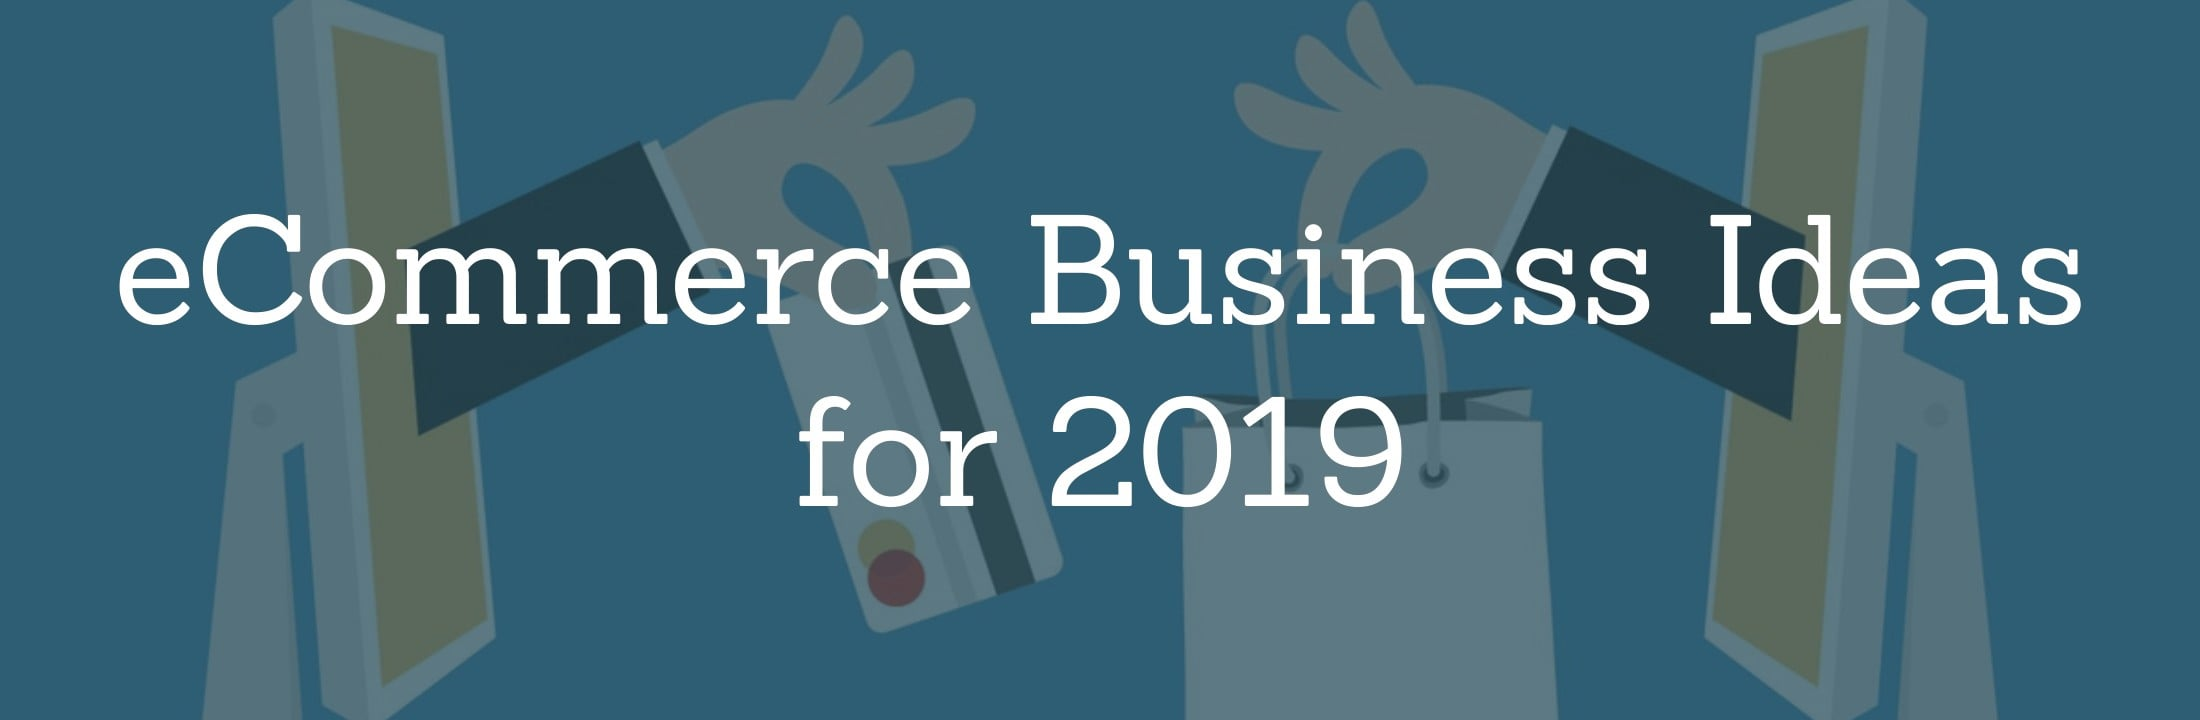 eCommerce Business Ideas for 2019 | Flowster